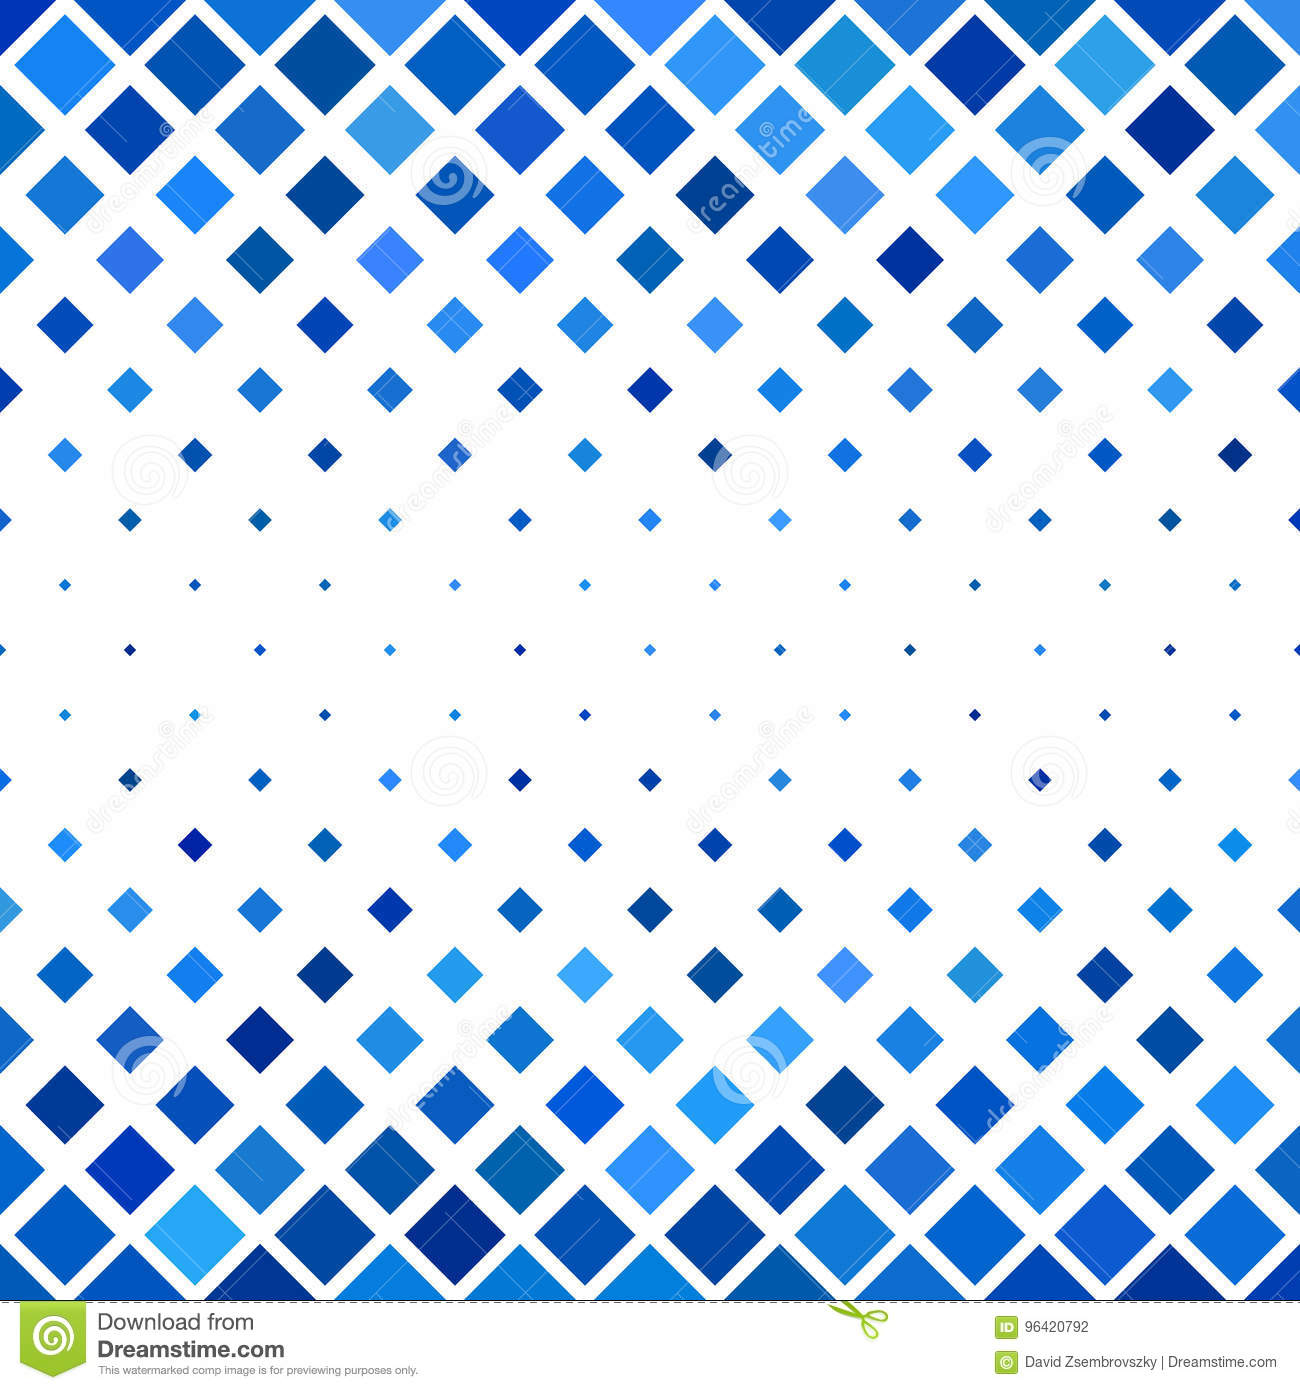 Colored Abstract Square Pattern Background - Vector